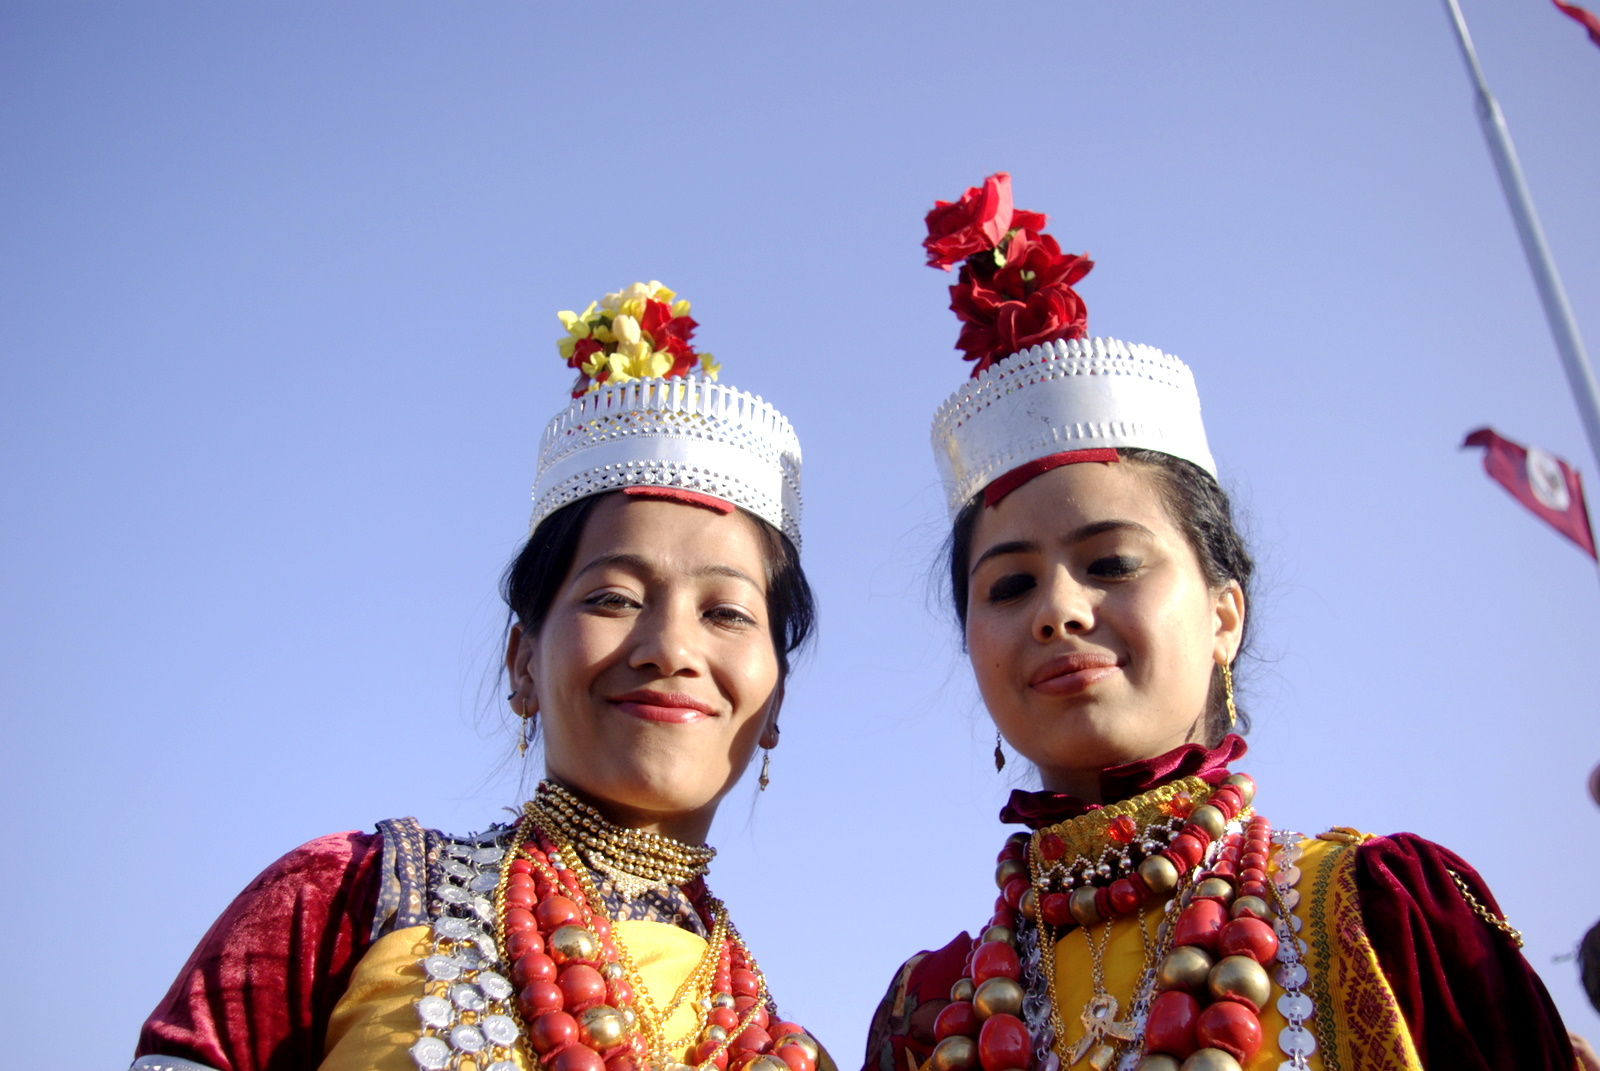 Khasi Society: India's largest Matrilineal Society